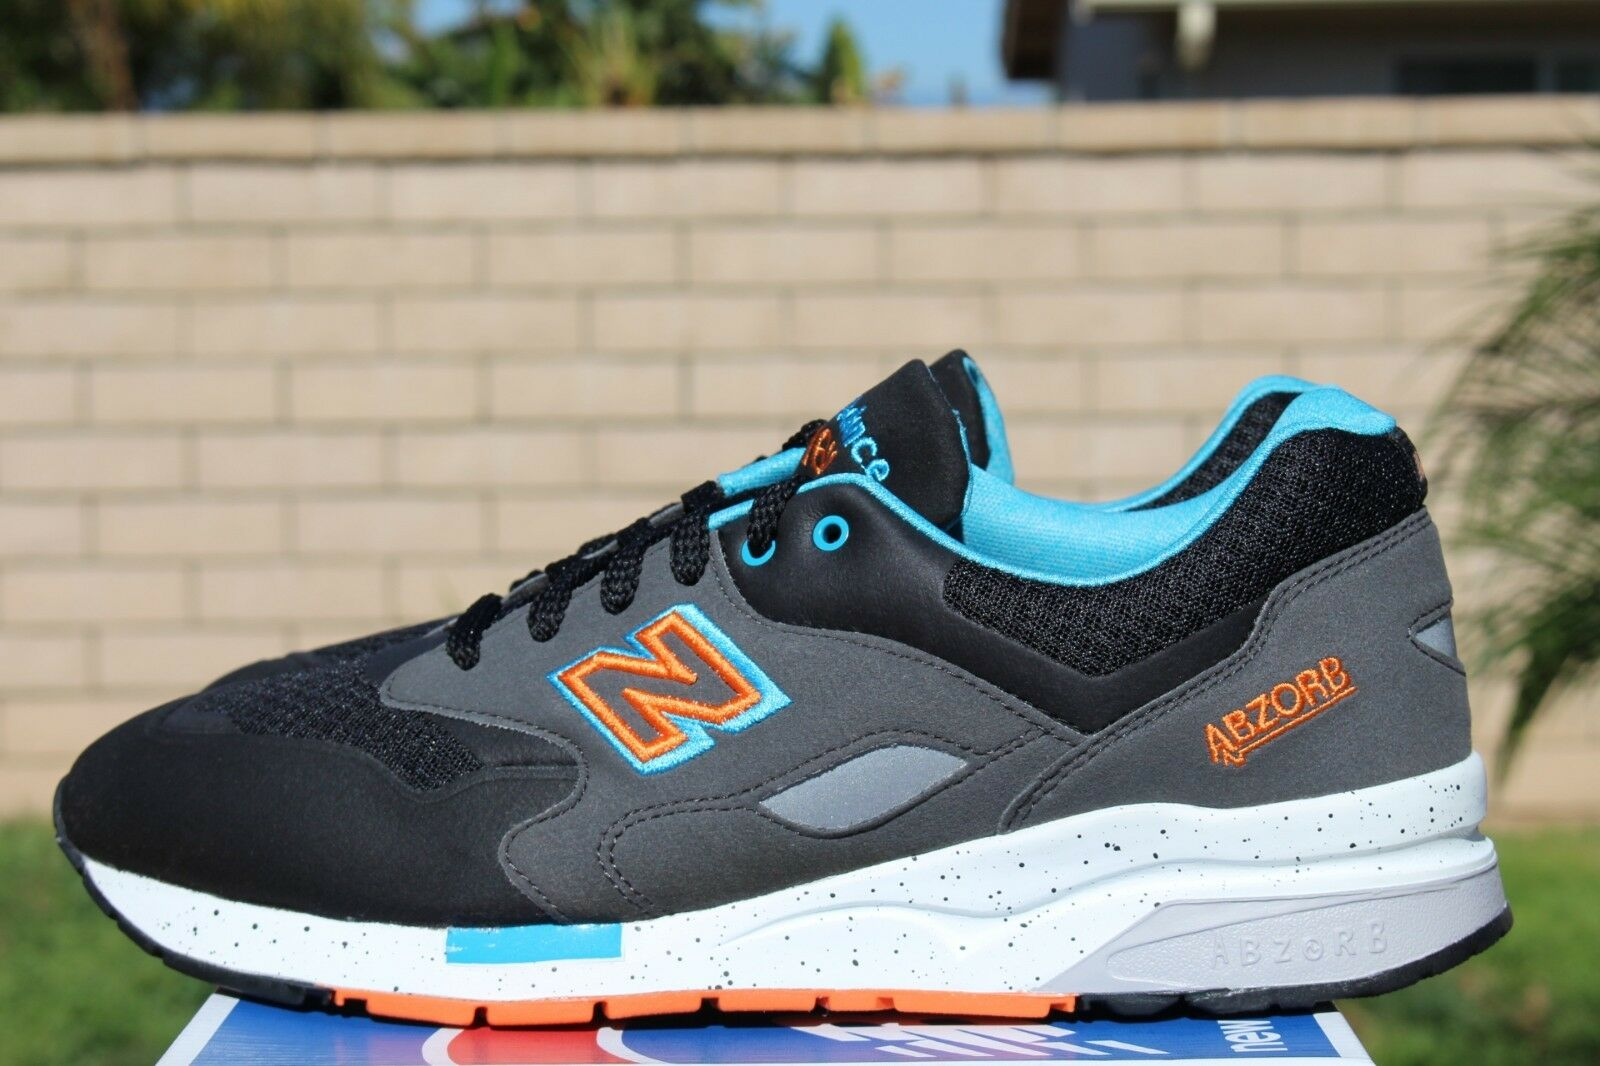 NEW BALANCE 1600 SZ 8.5 BLACK BLUE ORANGE GREY SONIC WELD CM1600KO